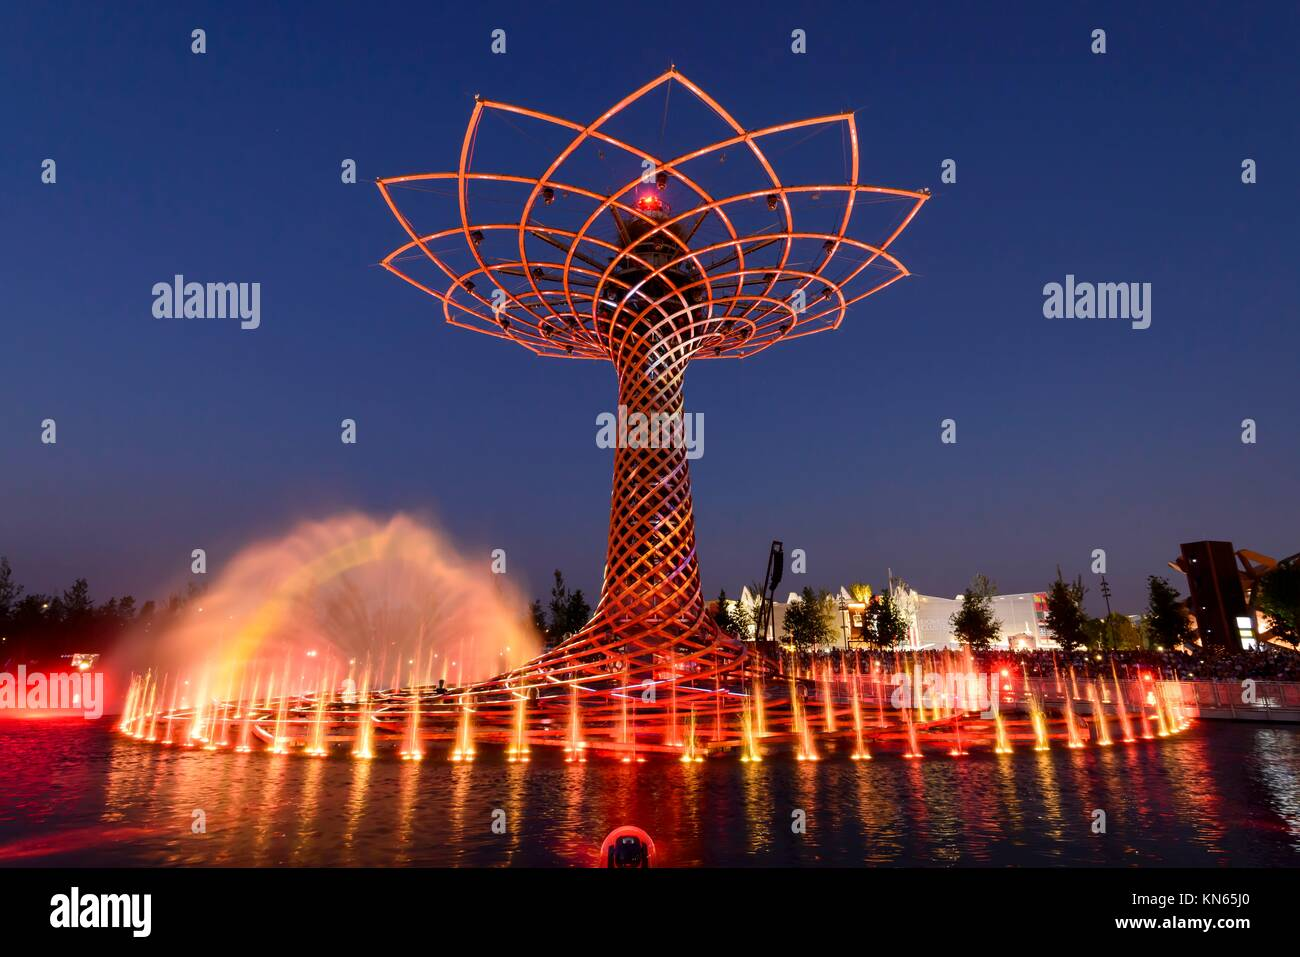 MILAN, ITALY - jun 30: EXPO 2015, night view of red colored gushes at the lights show on the fair symbol structure - Stock Image